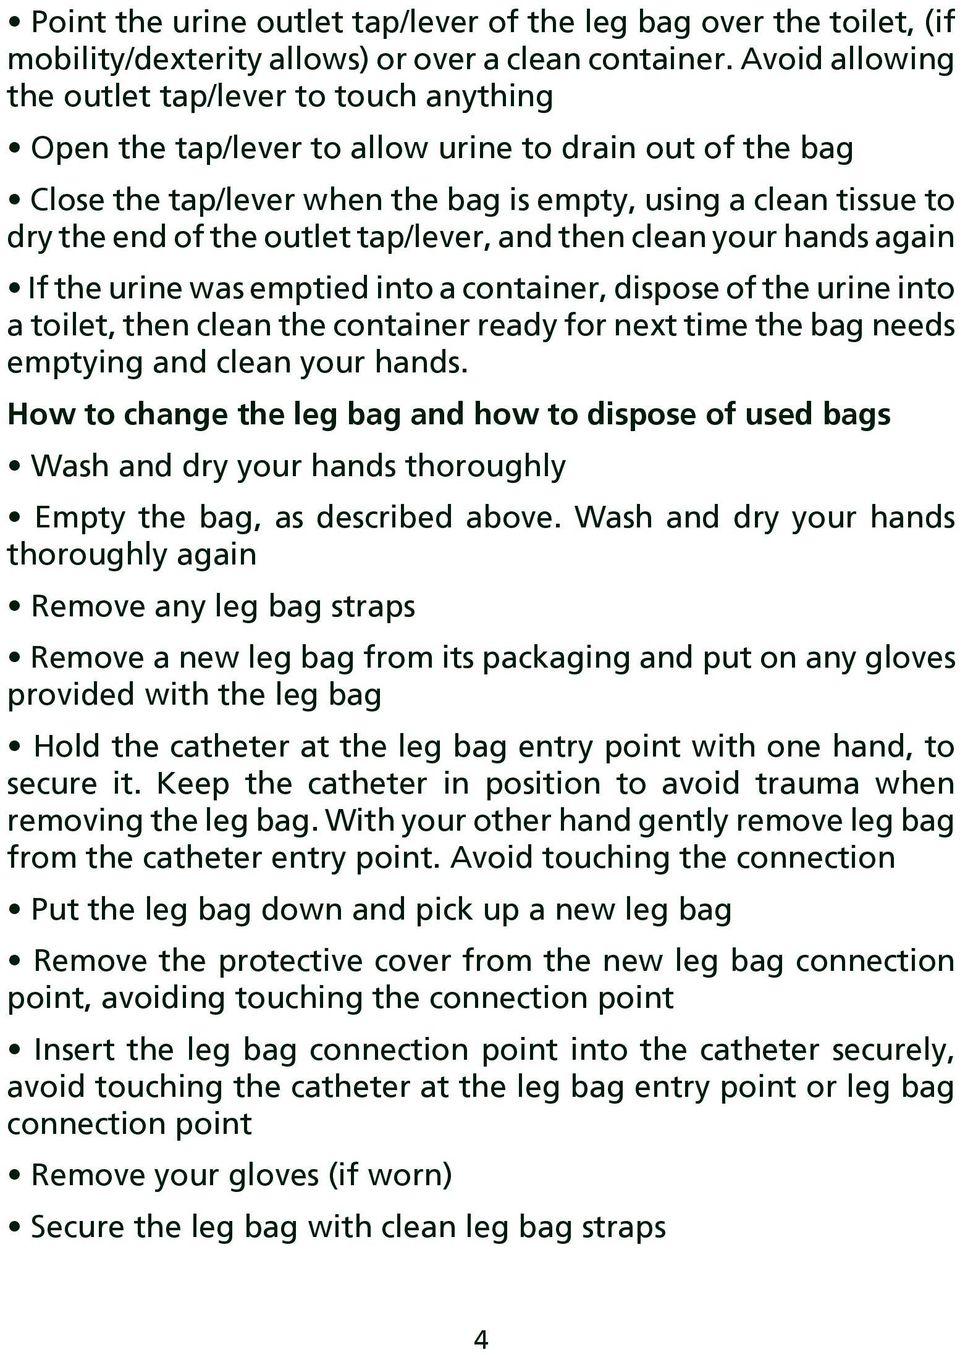 outlet tap/lever, and then clean your hands again If the urine was emptied into a container, dispose of the urine into a toilet, then clean the container ready for next time the bag needs emptying